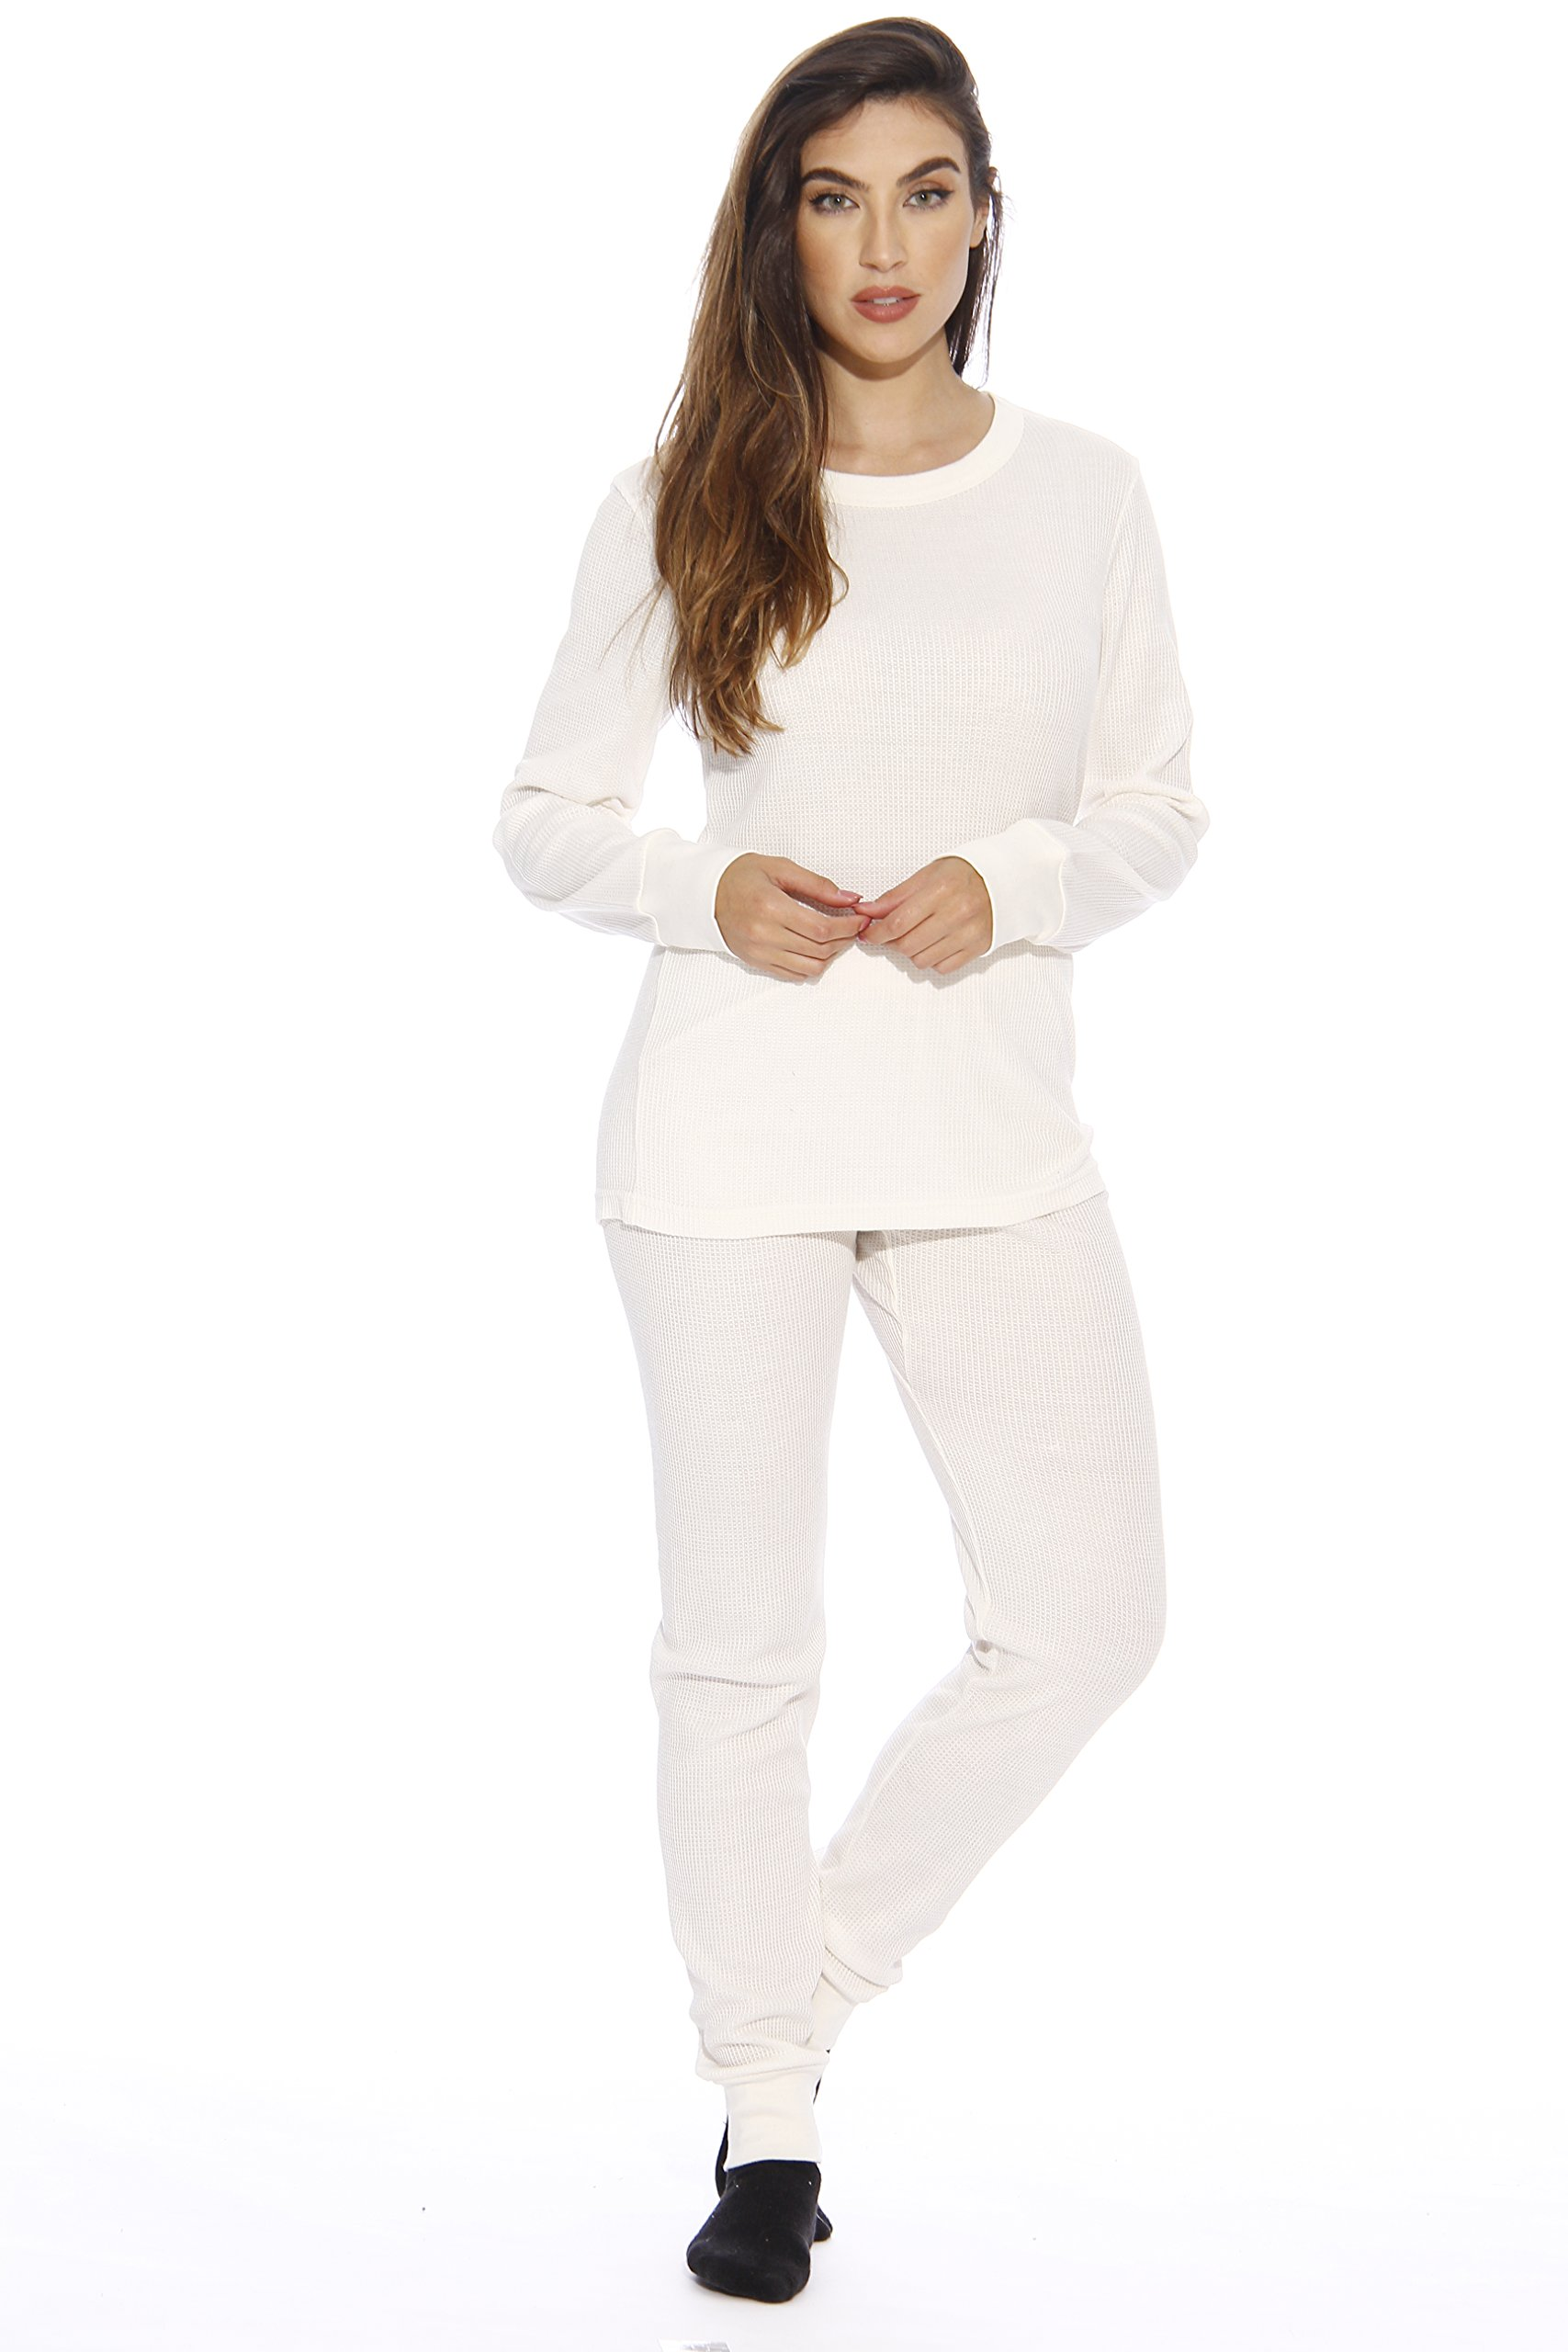 95862-White-M Just Love Women's Thermal Underwear Set / Base Layer Thermals